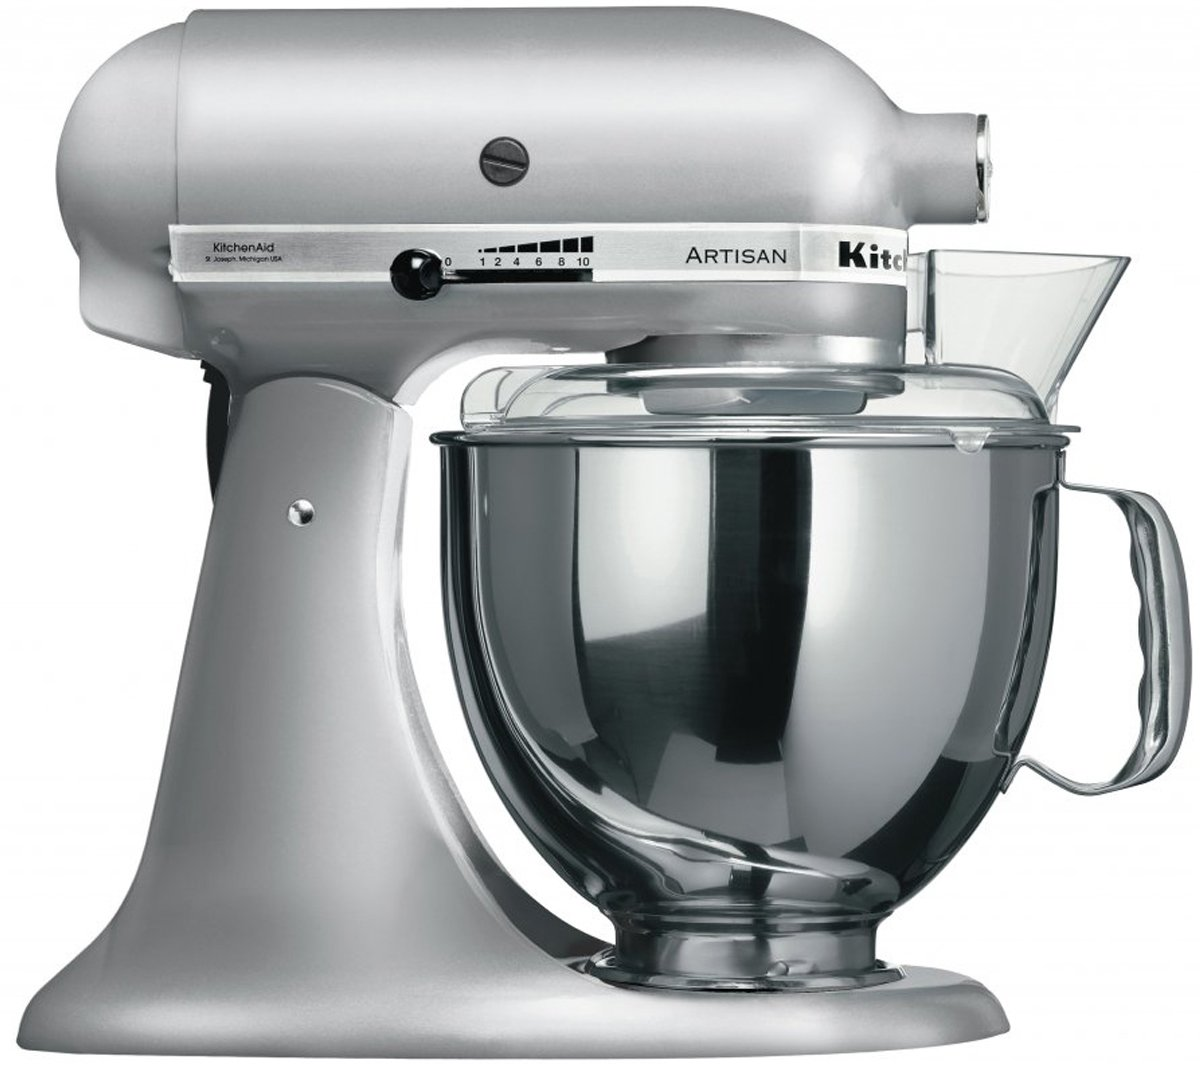 New Kitchenaid 91099 Artisan Ksm150 Stand Mixer Ebay